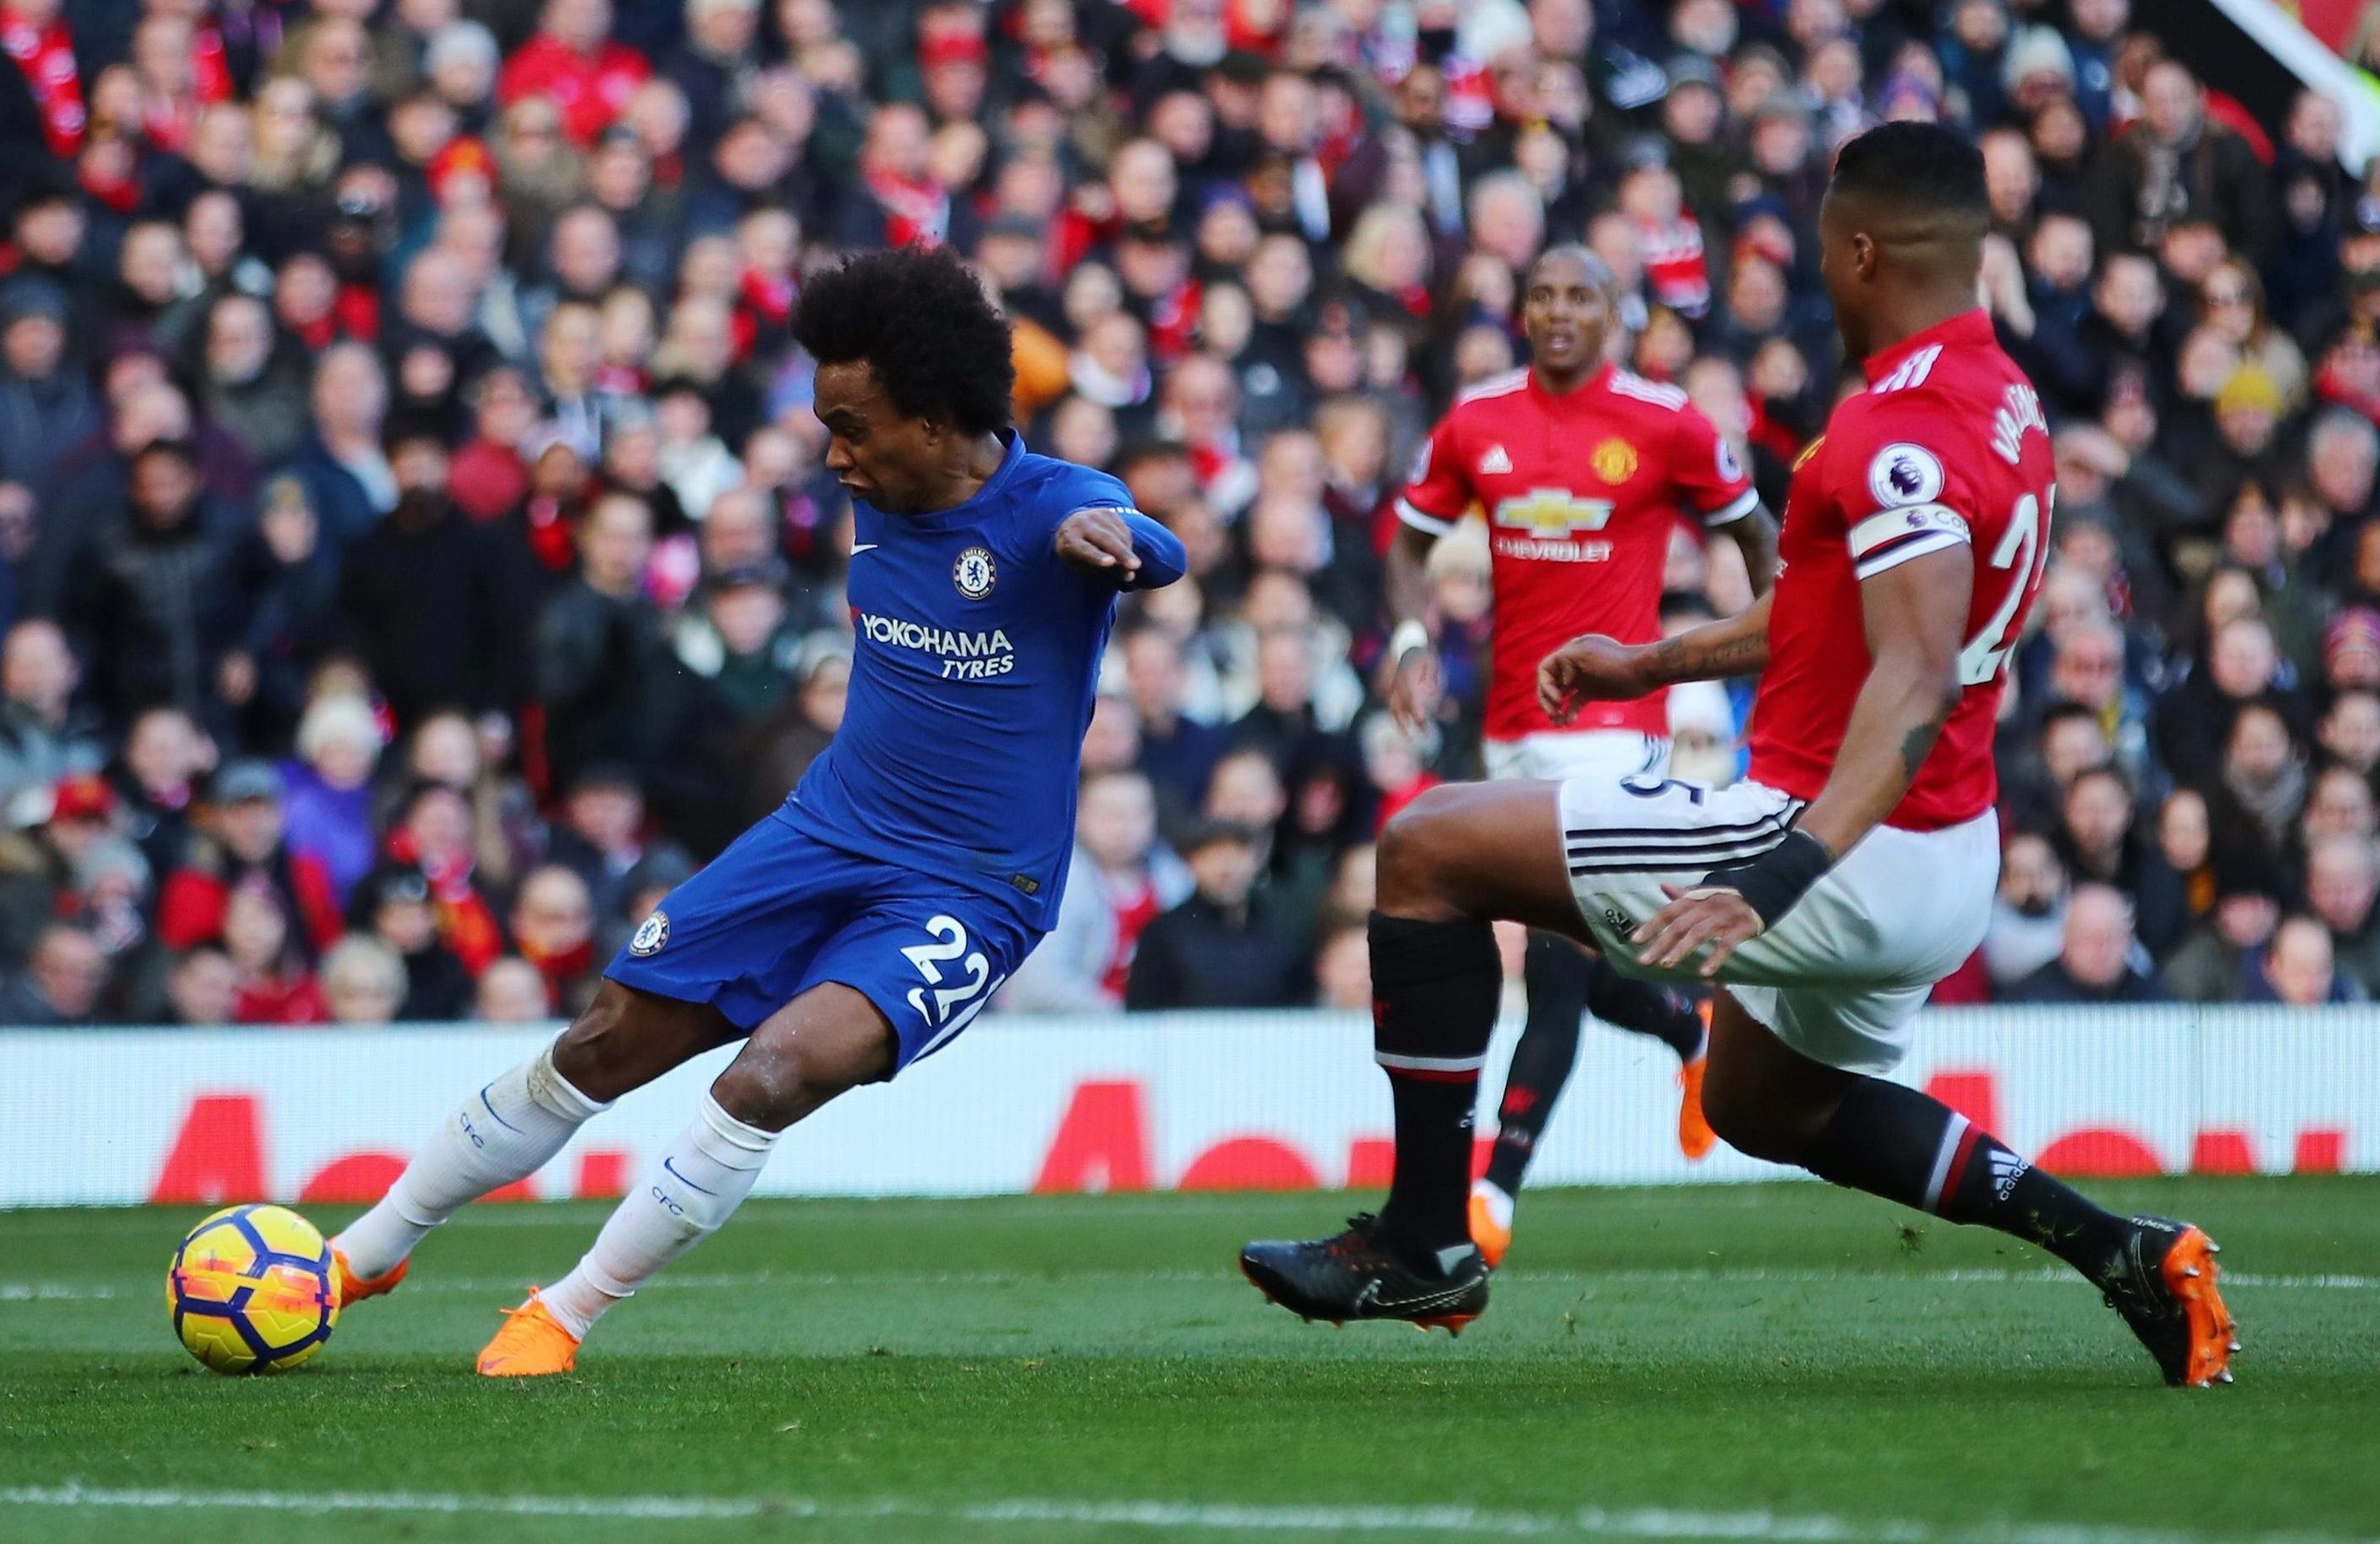 Willian continued his excellent form last weekend